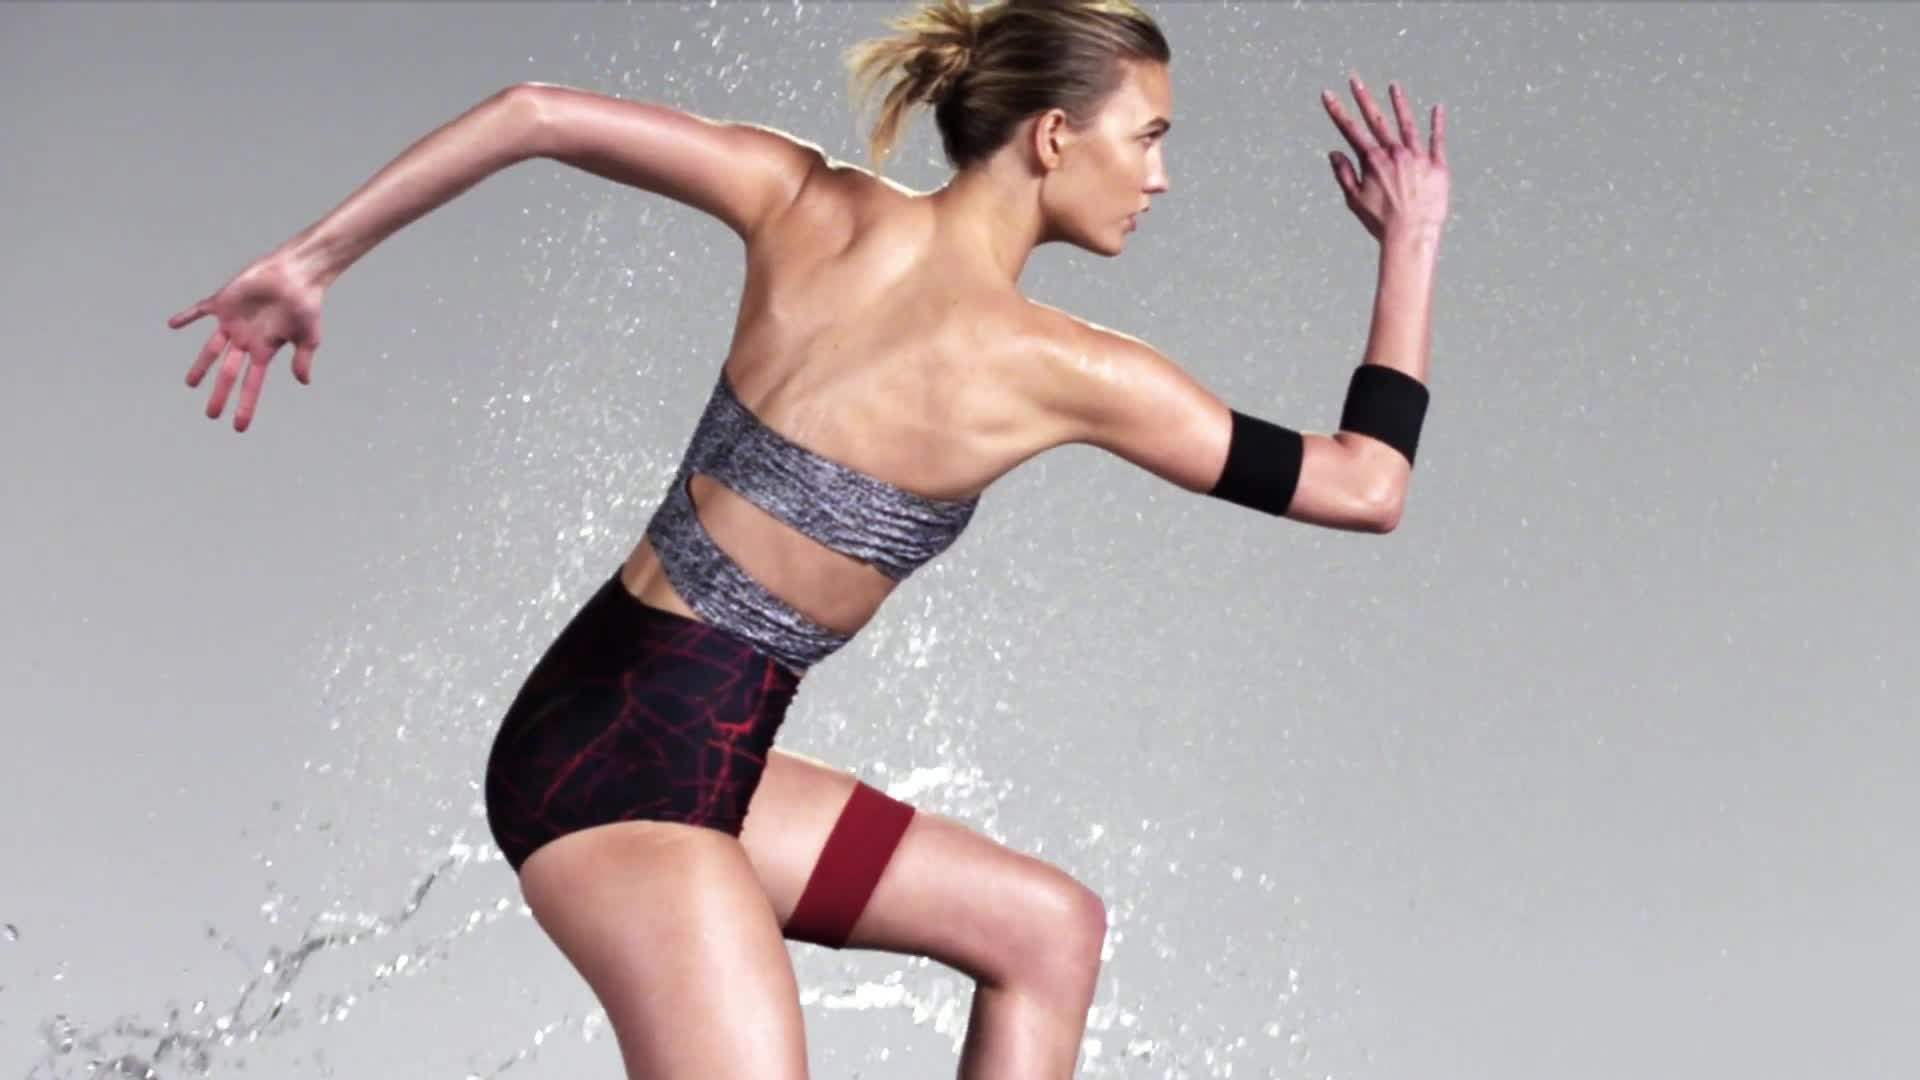 Watch Karlie Kloss in Action